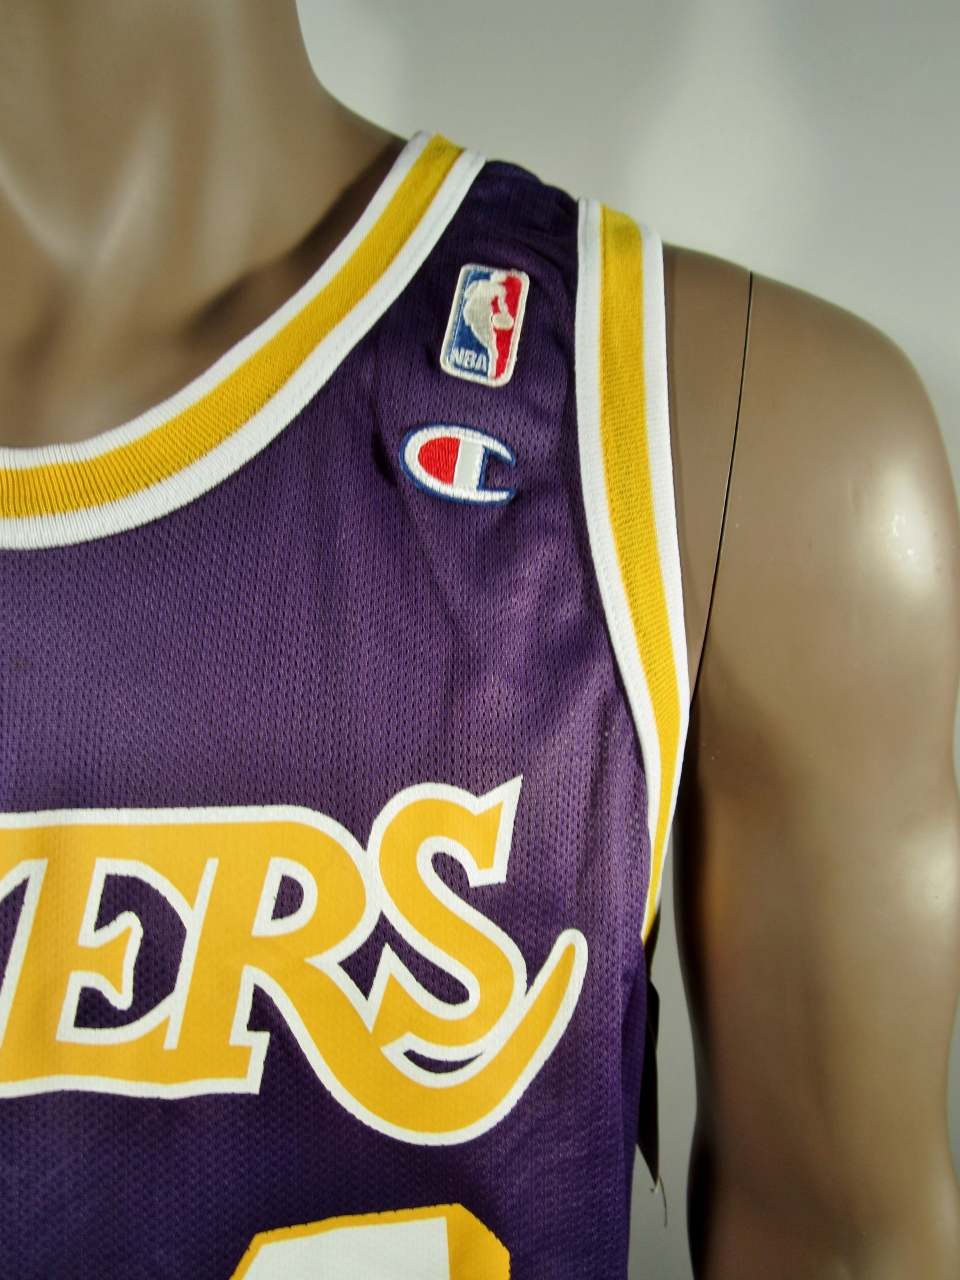 ae94d1c90cfc ... Shaquille O Neal Los Angeles Lakers Champion Jersey NWT - Thumbnail ...